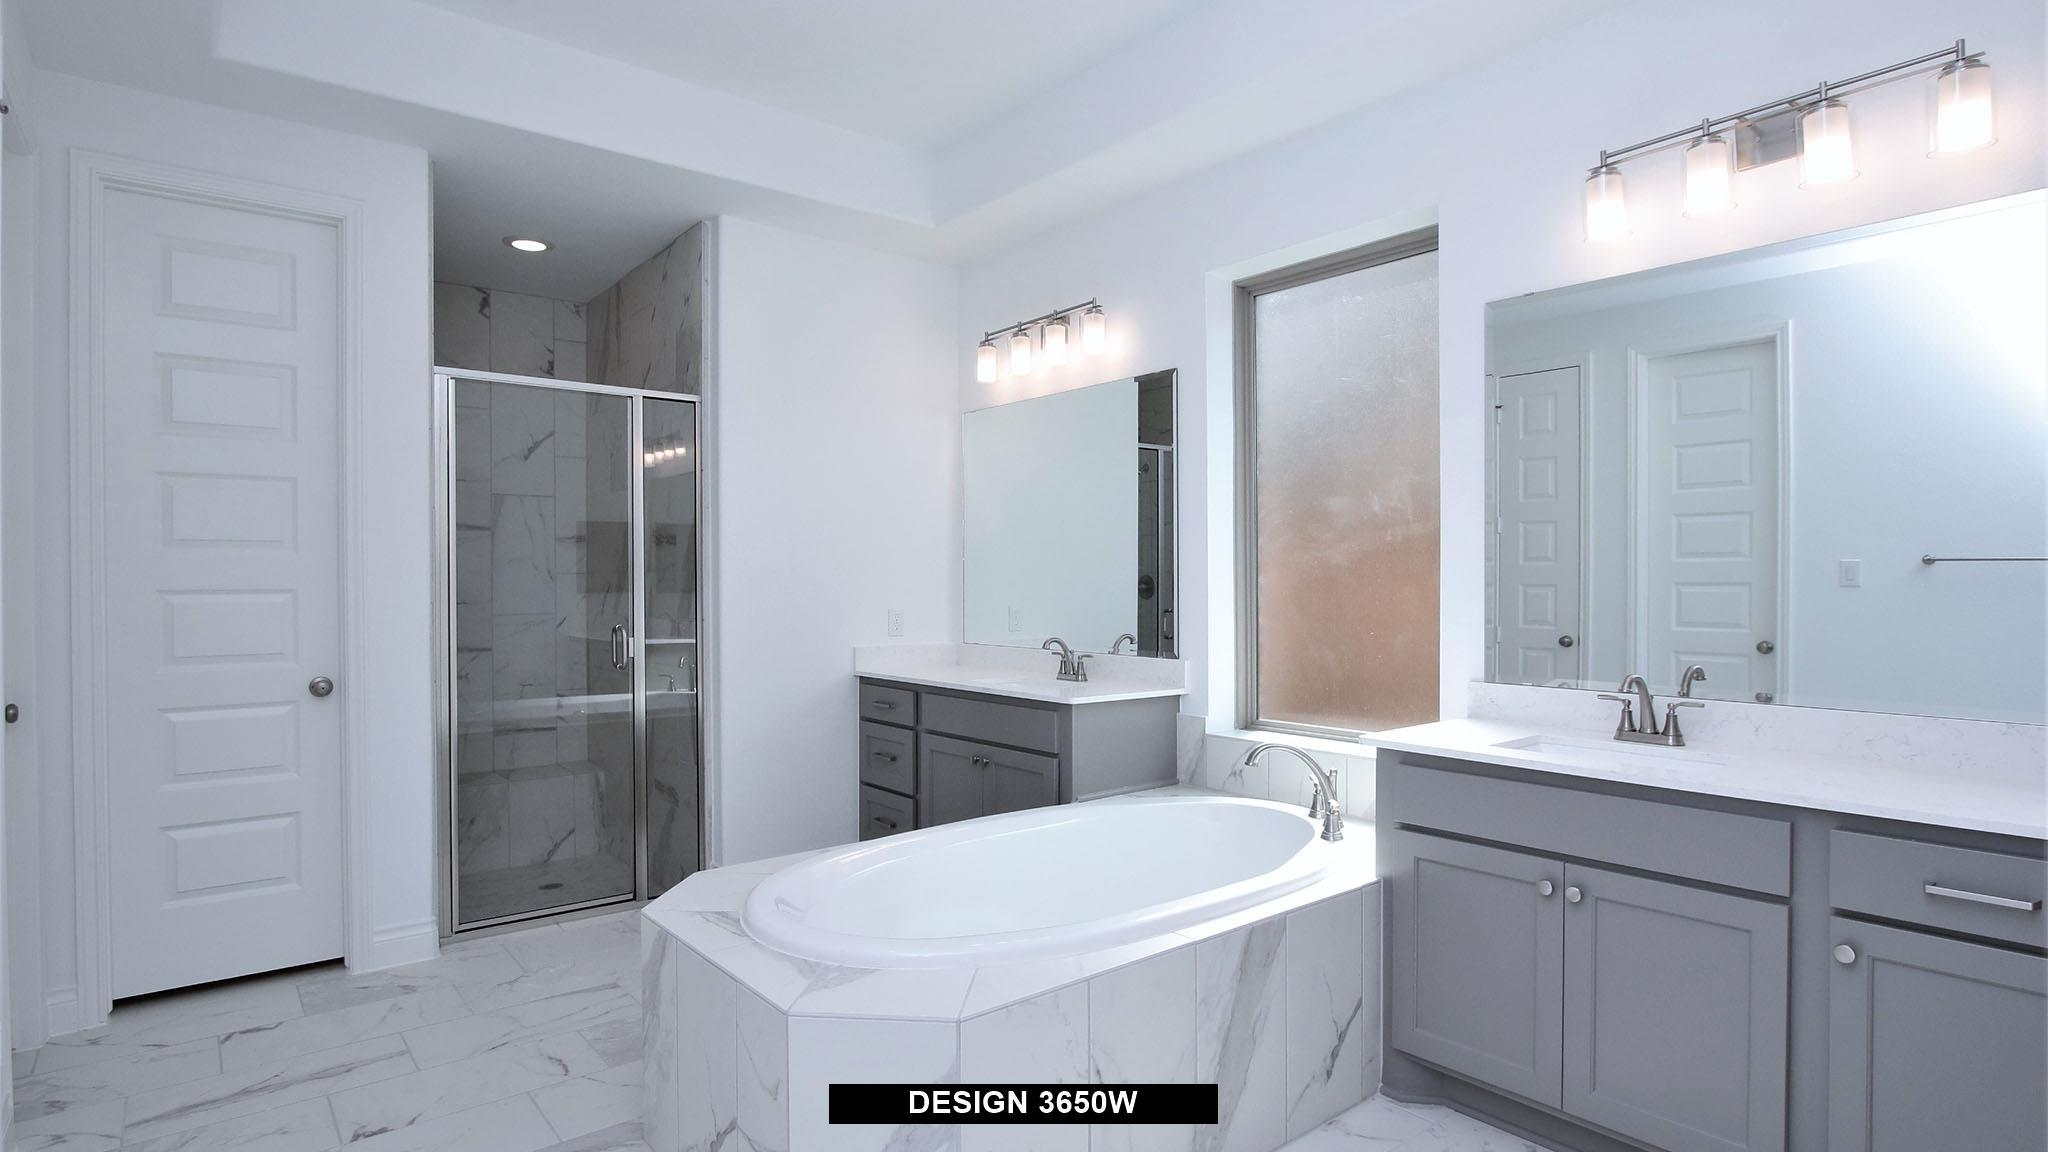 Bathroom featured in the 3650W By Perry Homes in Houston, TX